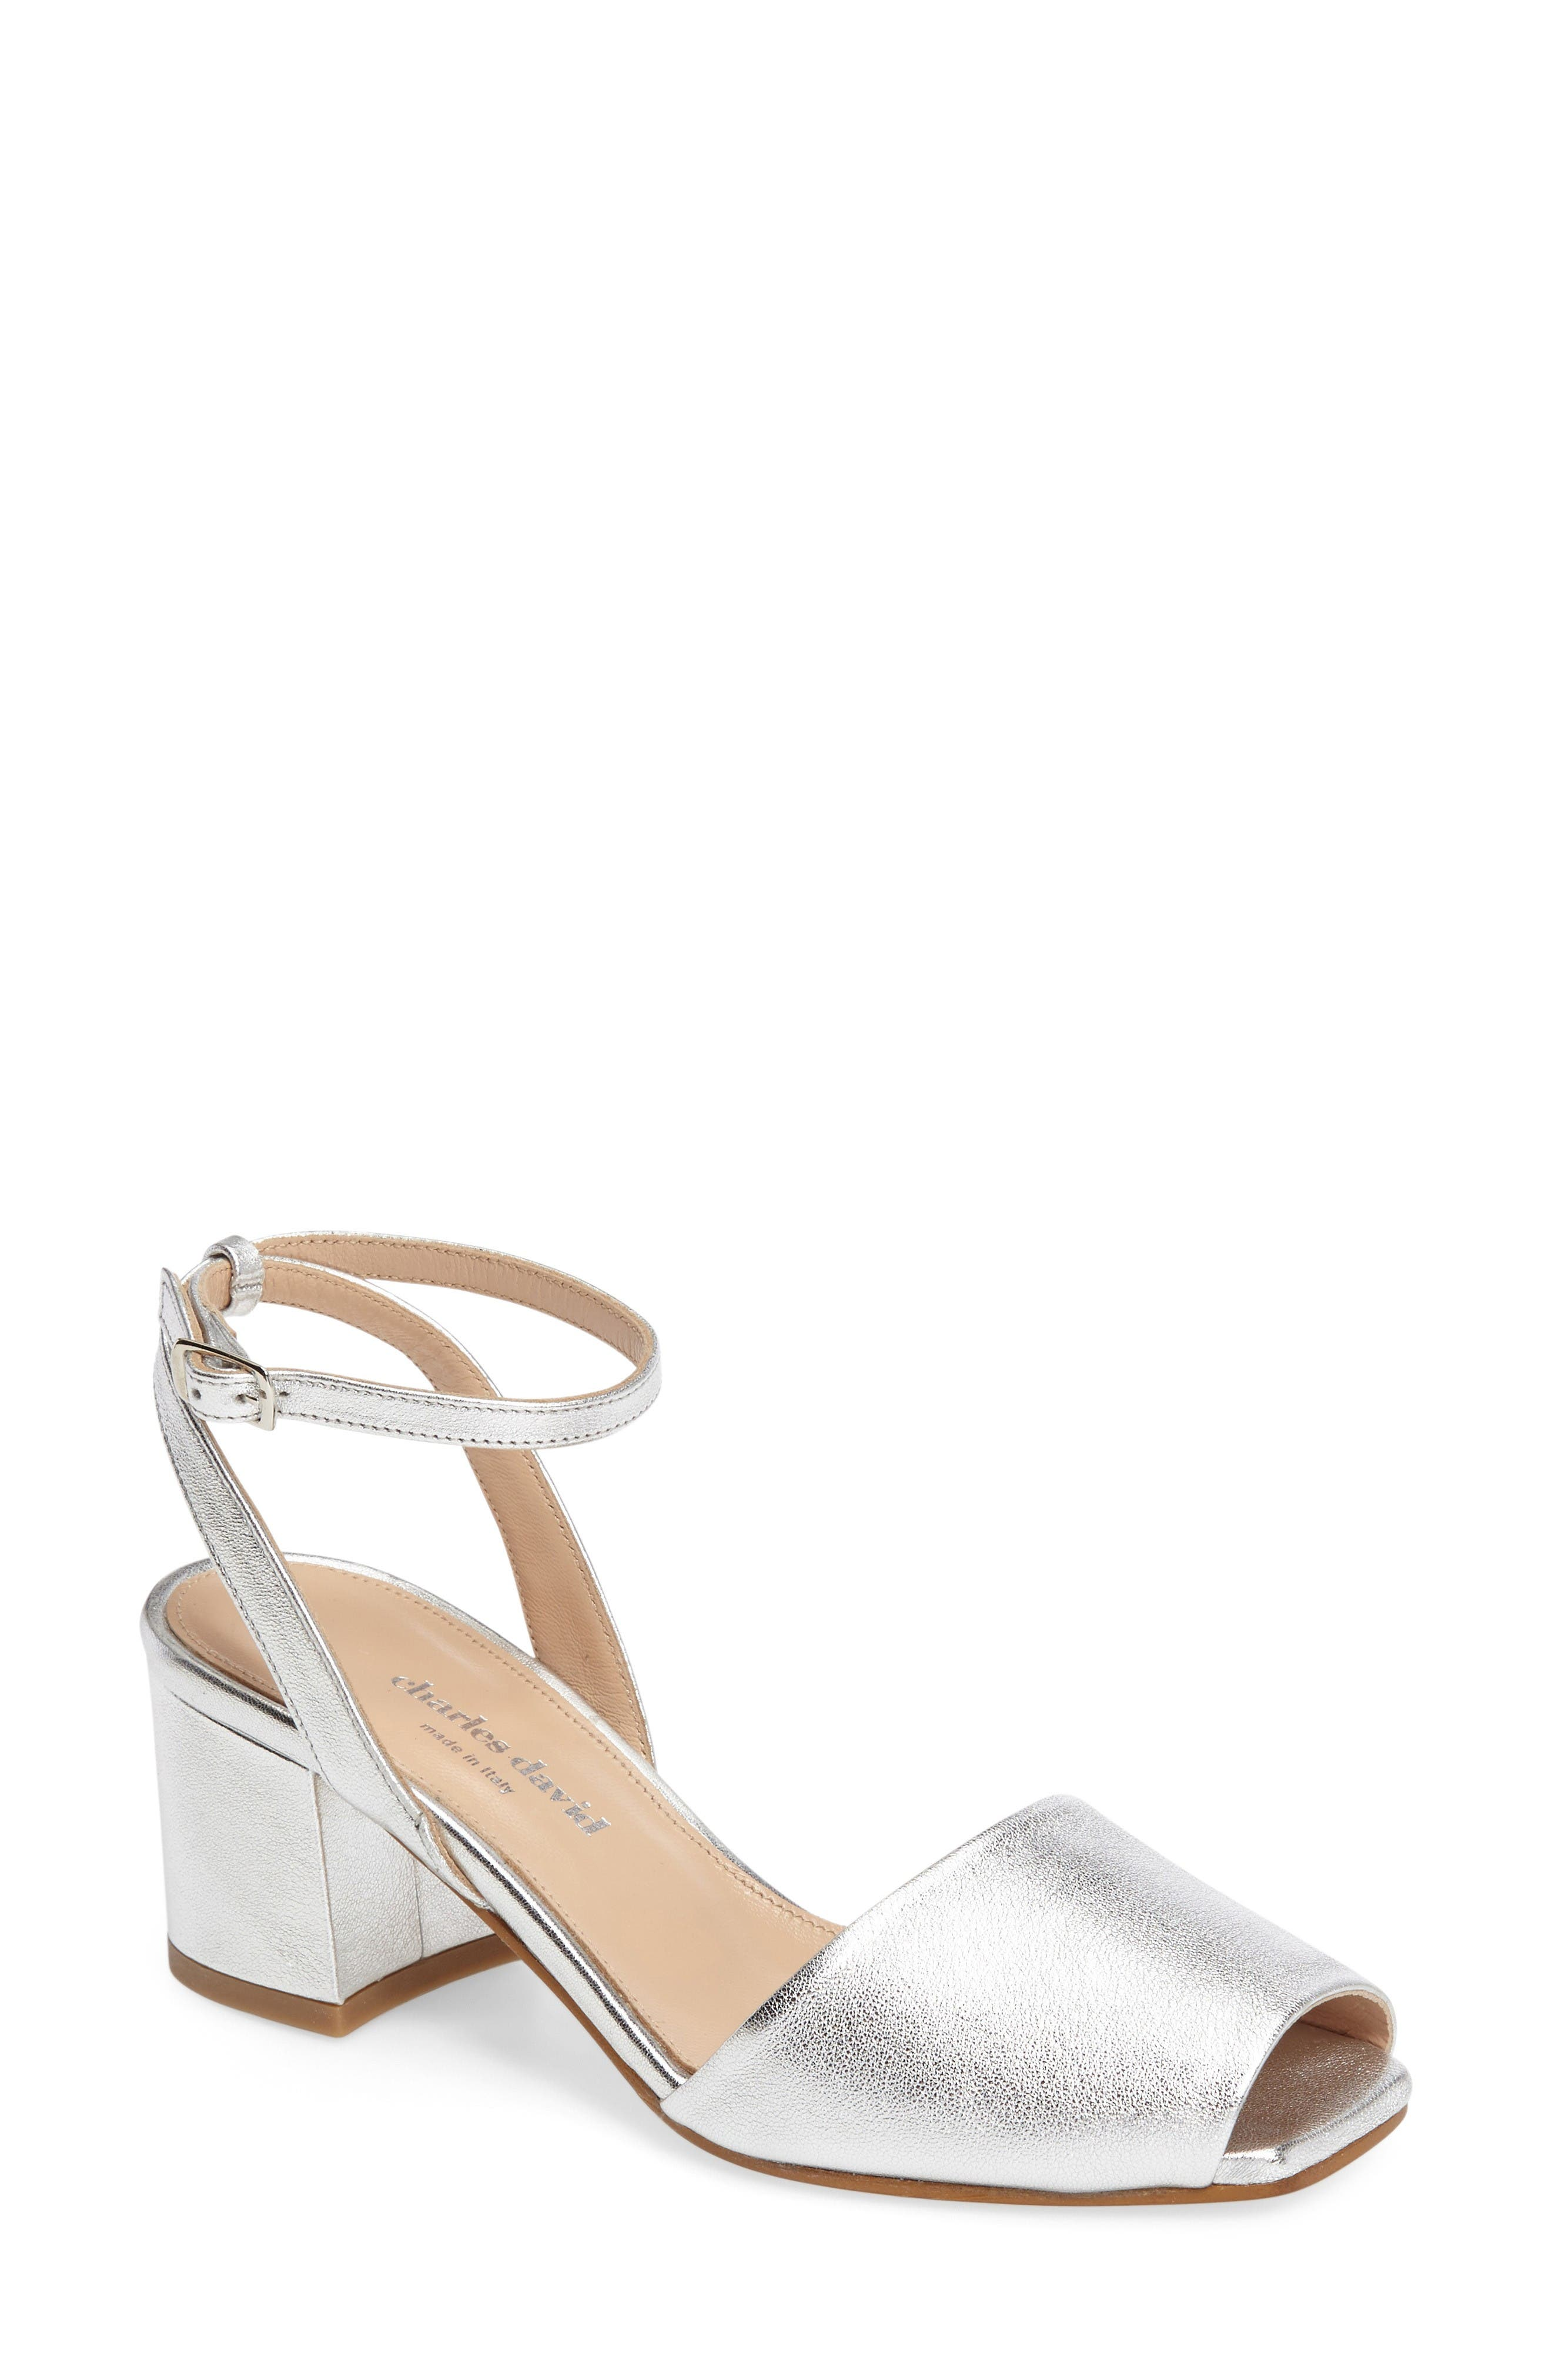 Cube Sandal,                         Main,                         color, Silver Leather